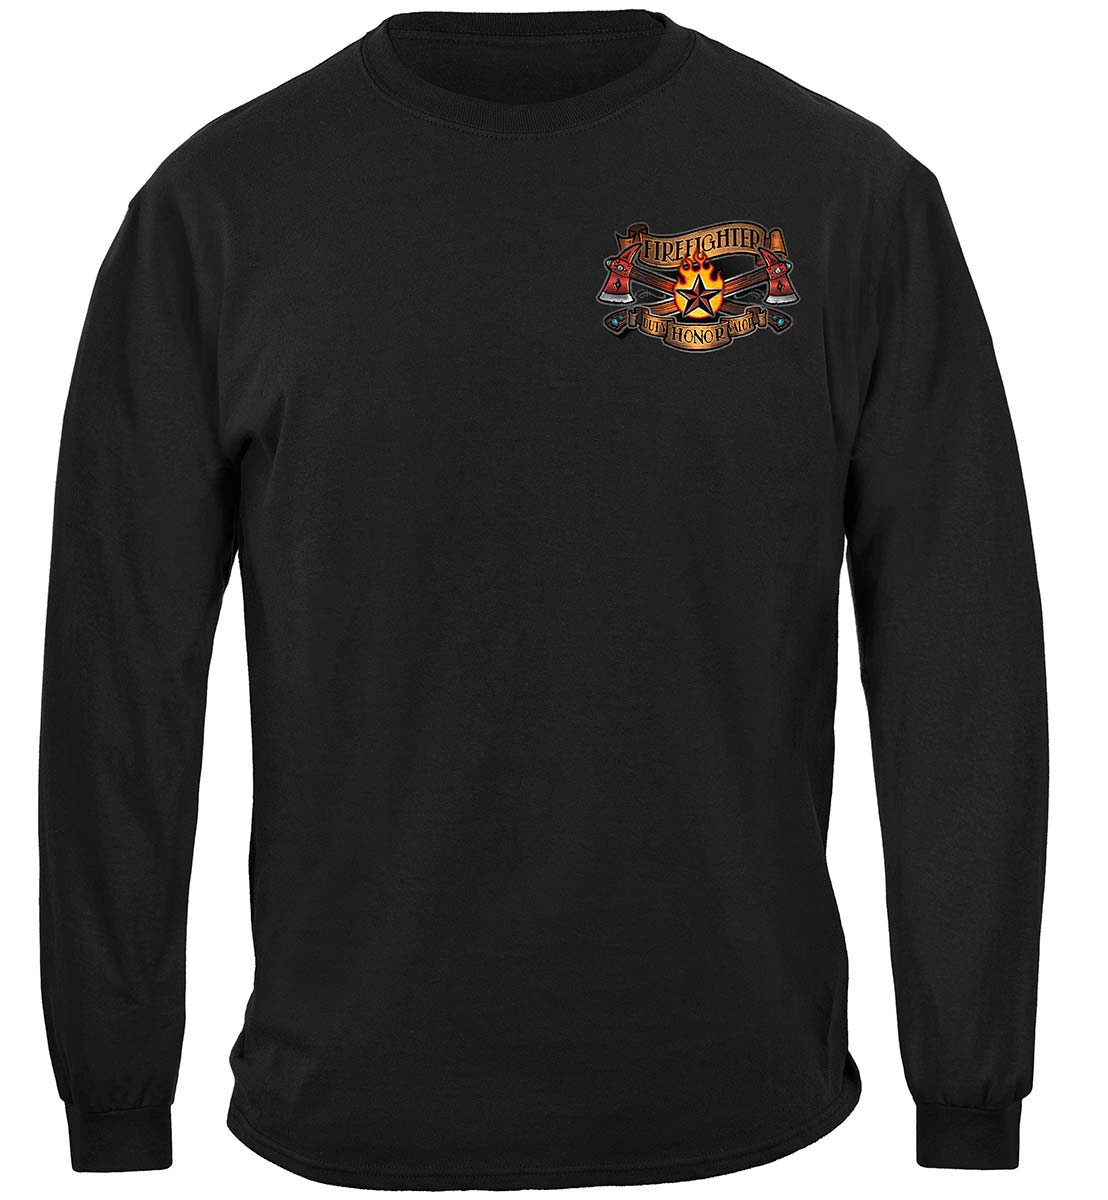 Firefighter Vintage Tattoo Art Premium Long Sleeves